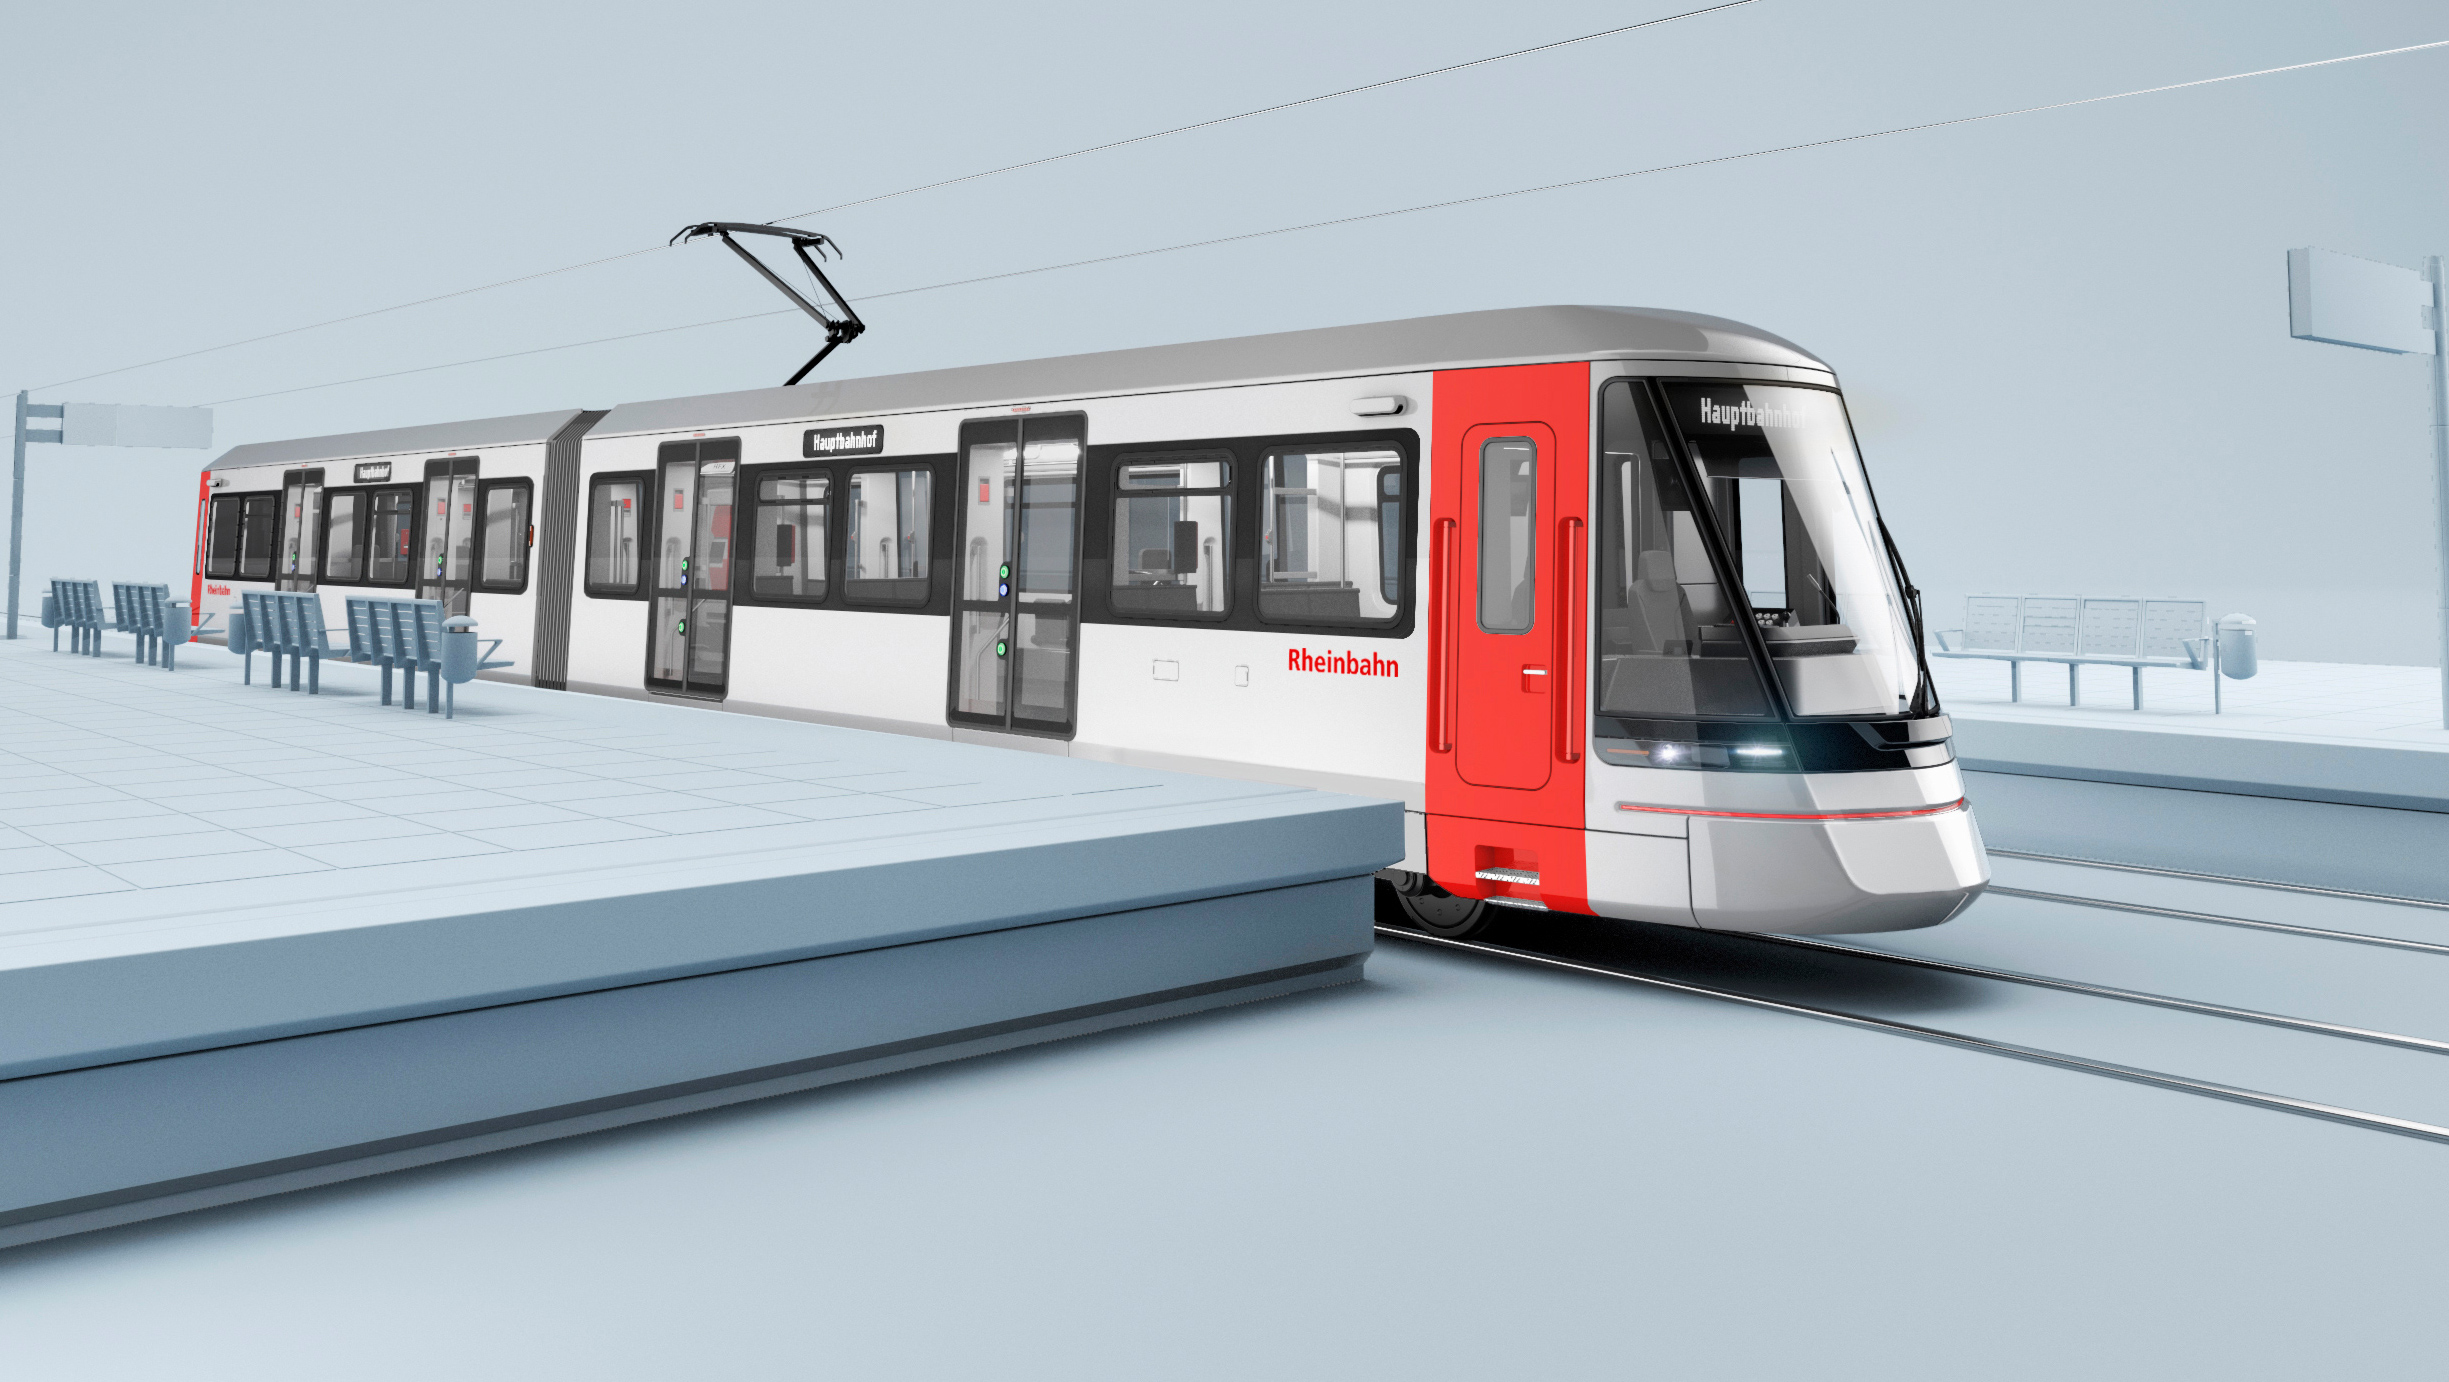 Rendering of the light rail vehicle for Duisburg and Dusseldorf